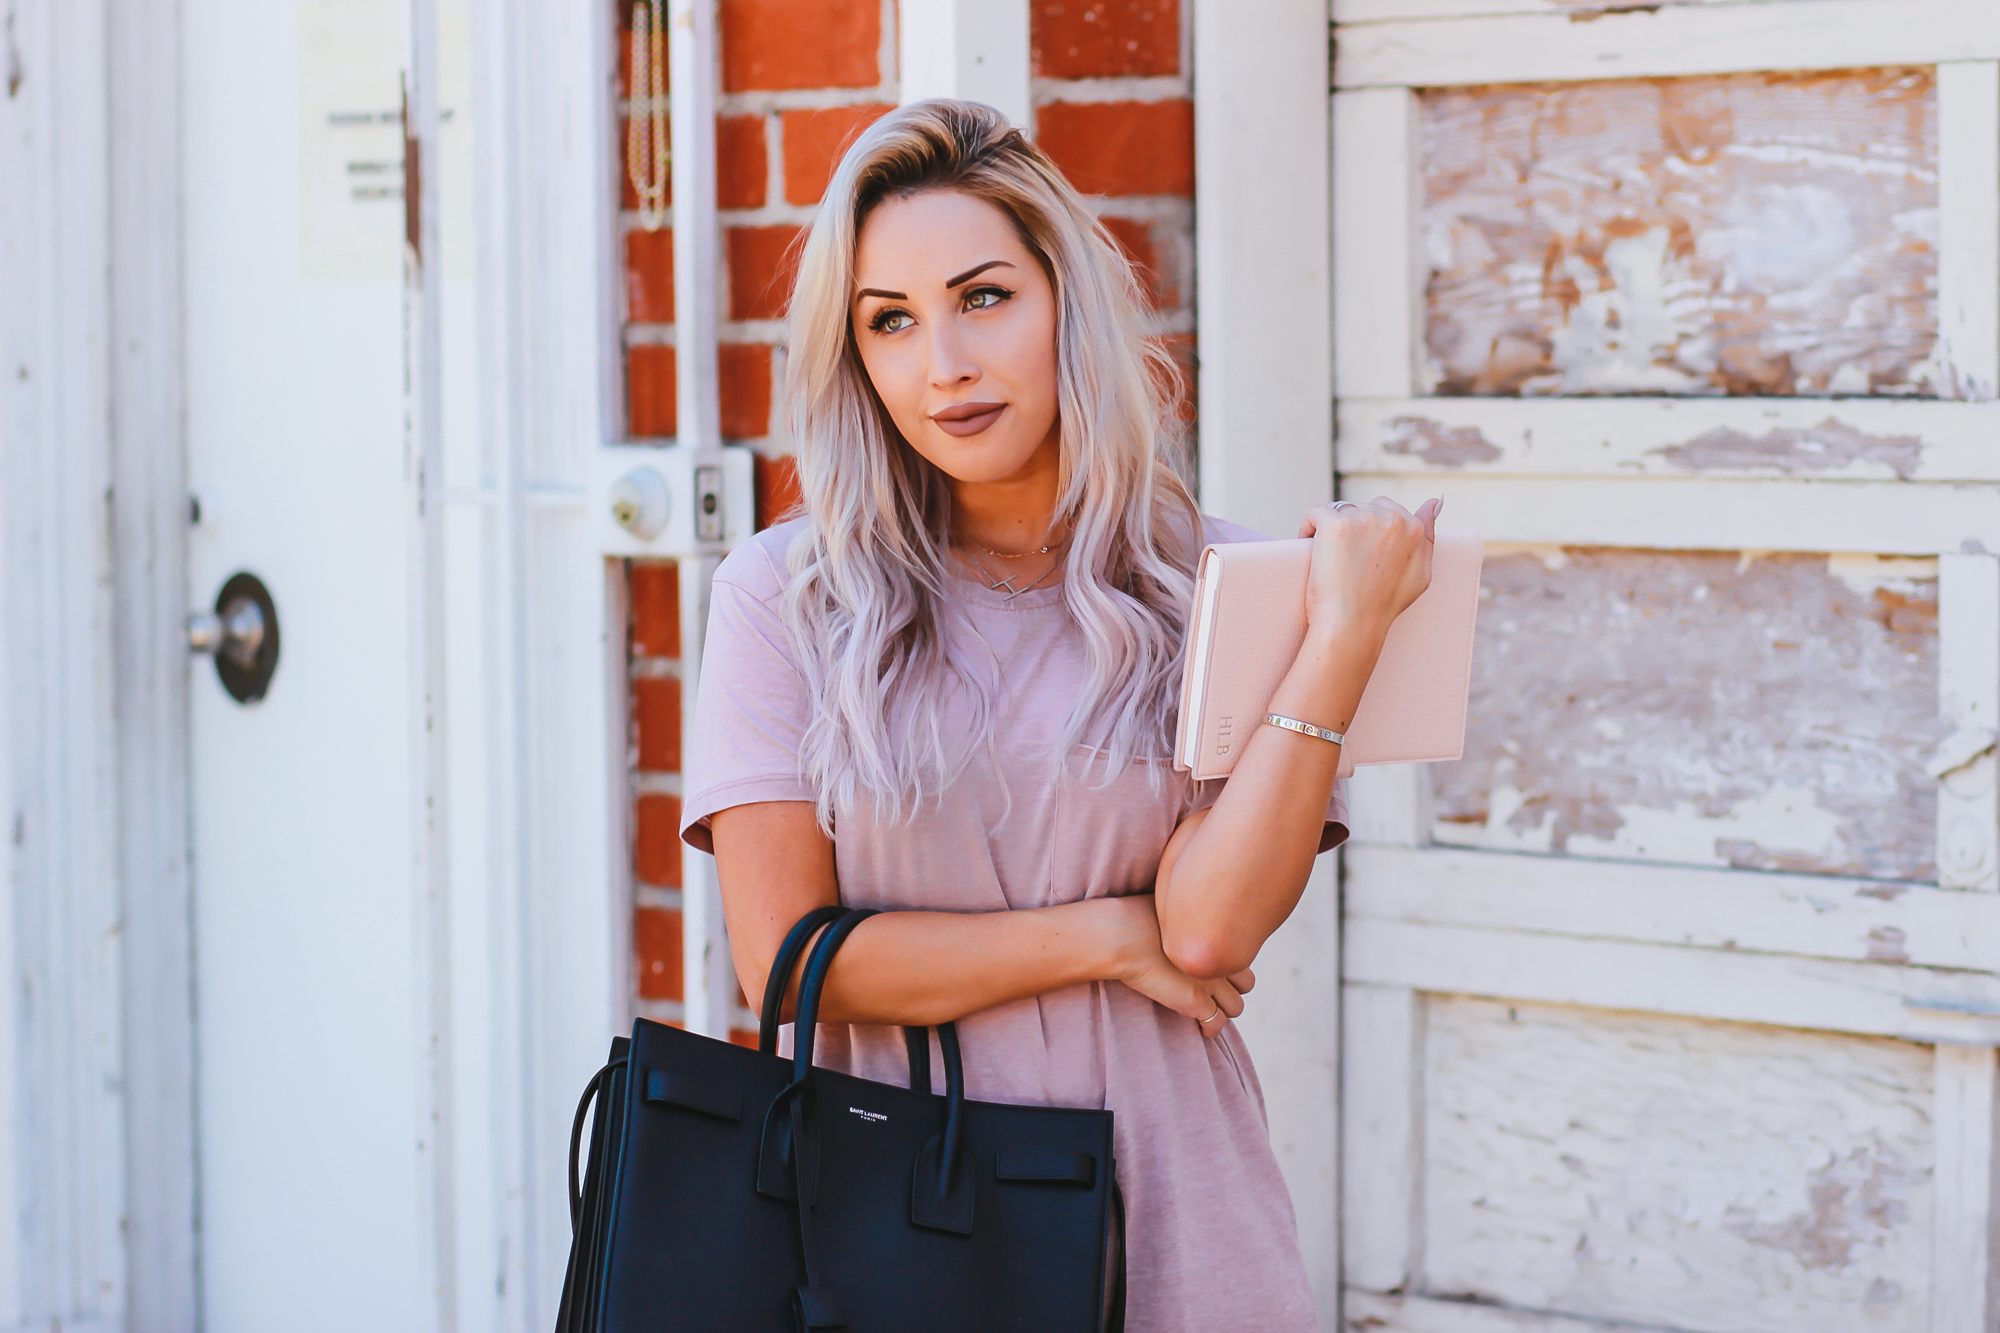 Blondie in the City | Pink Men's Tee from Urban Outfitters as T-Shirt Dress | YSL Bag